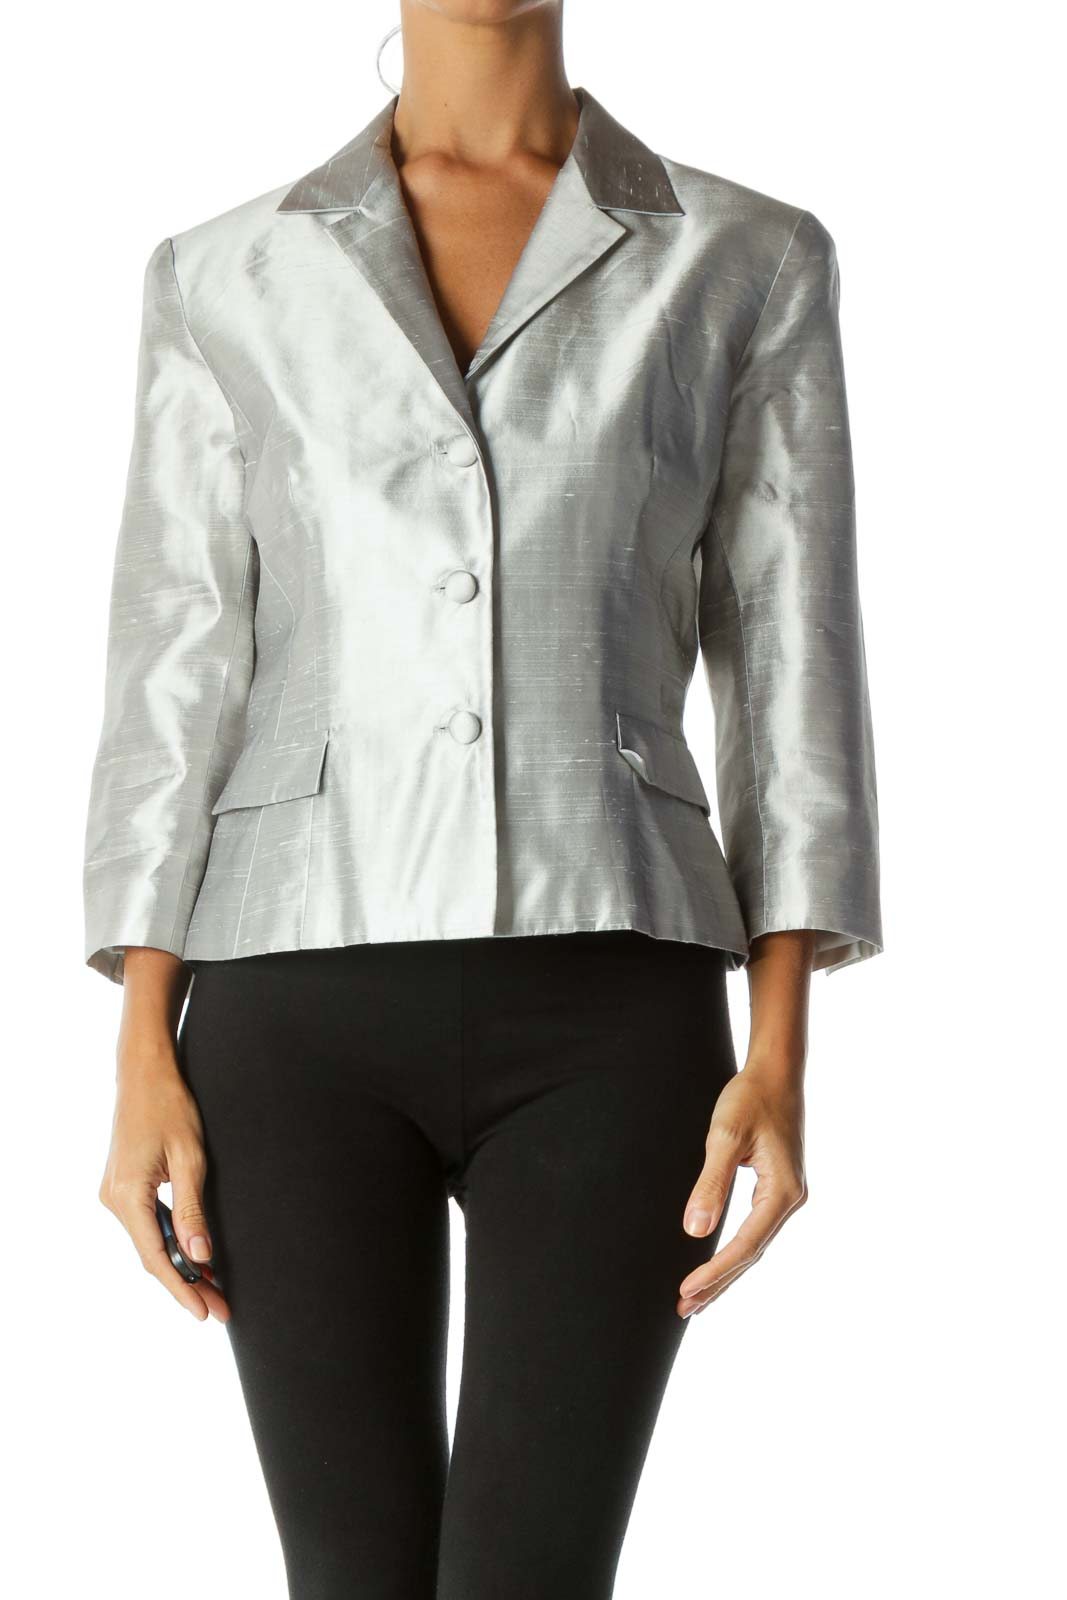 Silver Textured Fabric Buttoned Padded Shoulders Shiny Blazer